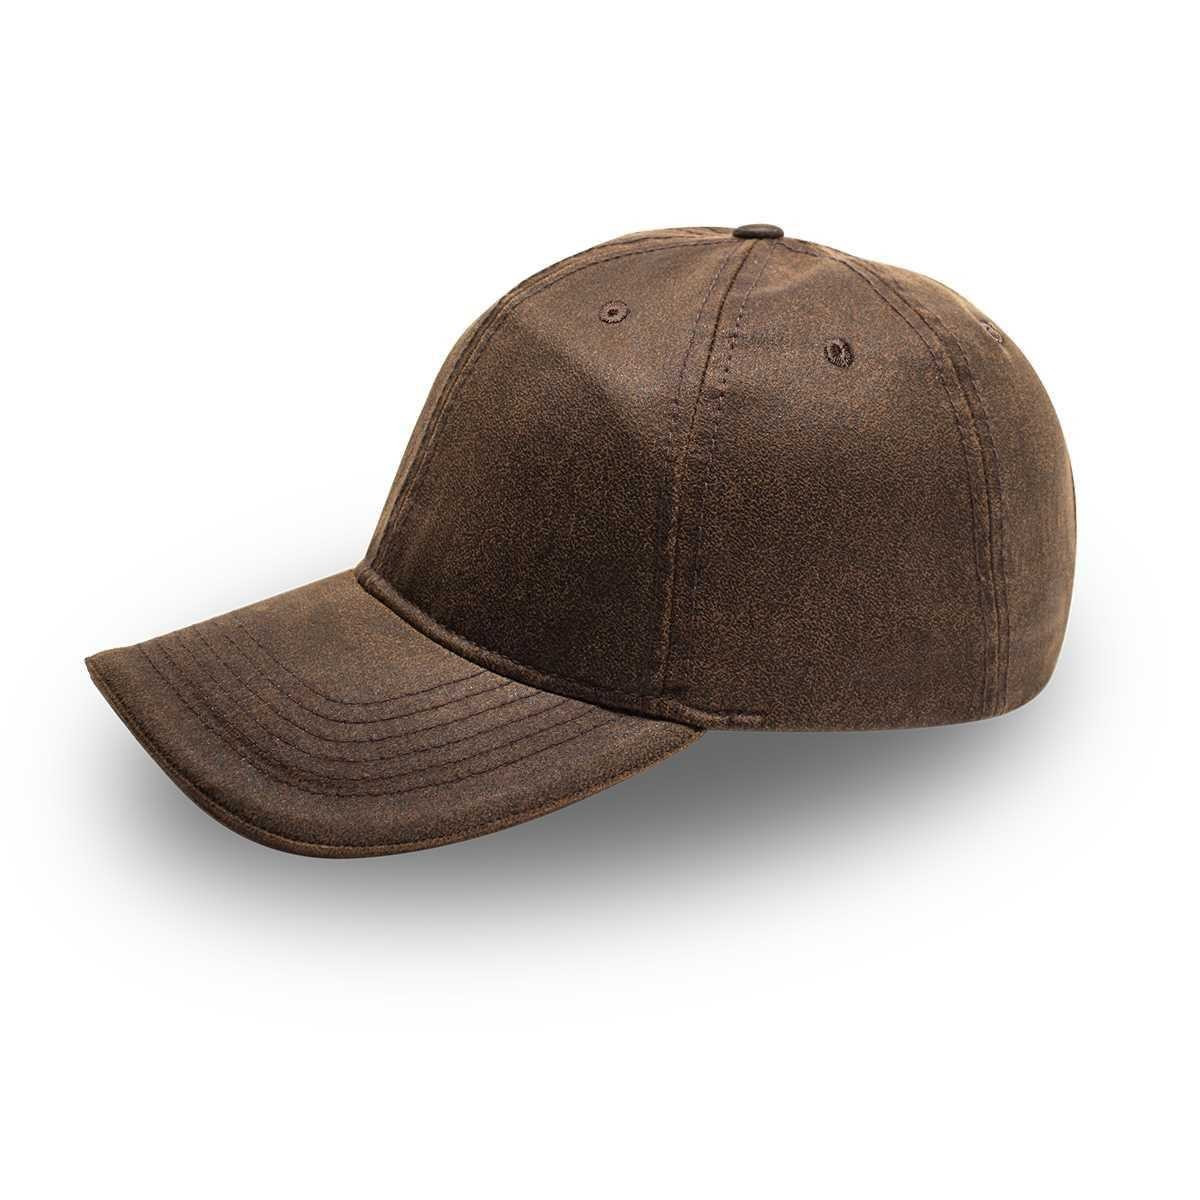 Oil Skin 6 Panel Cap - HEADWEAR ONLINE I CAPS I HATS I U-FLEX CAPS I ... 4c2bfbec022